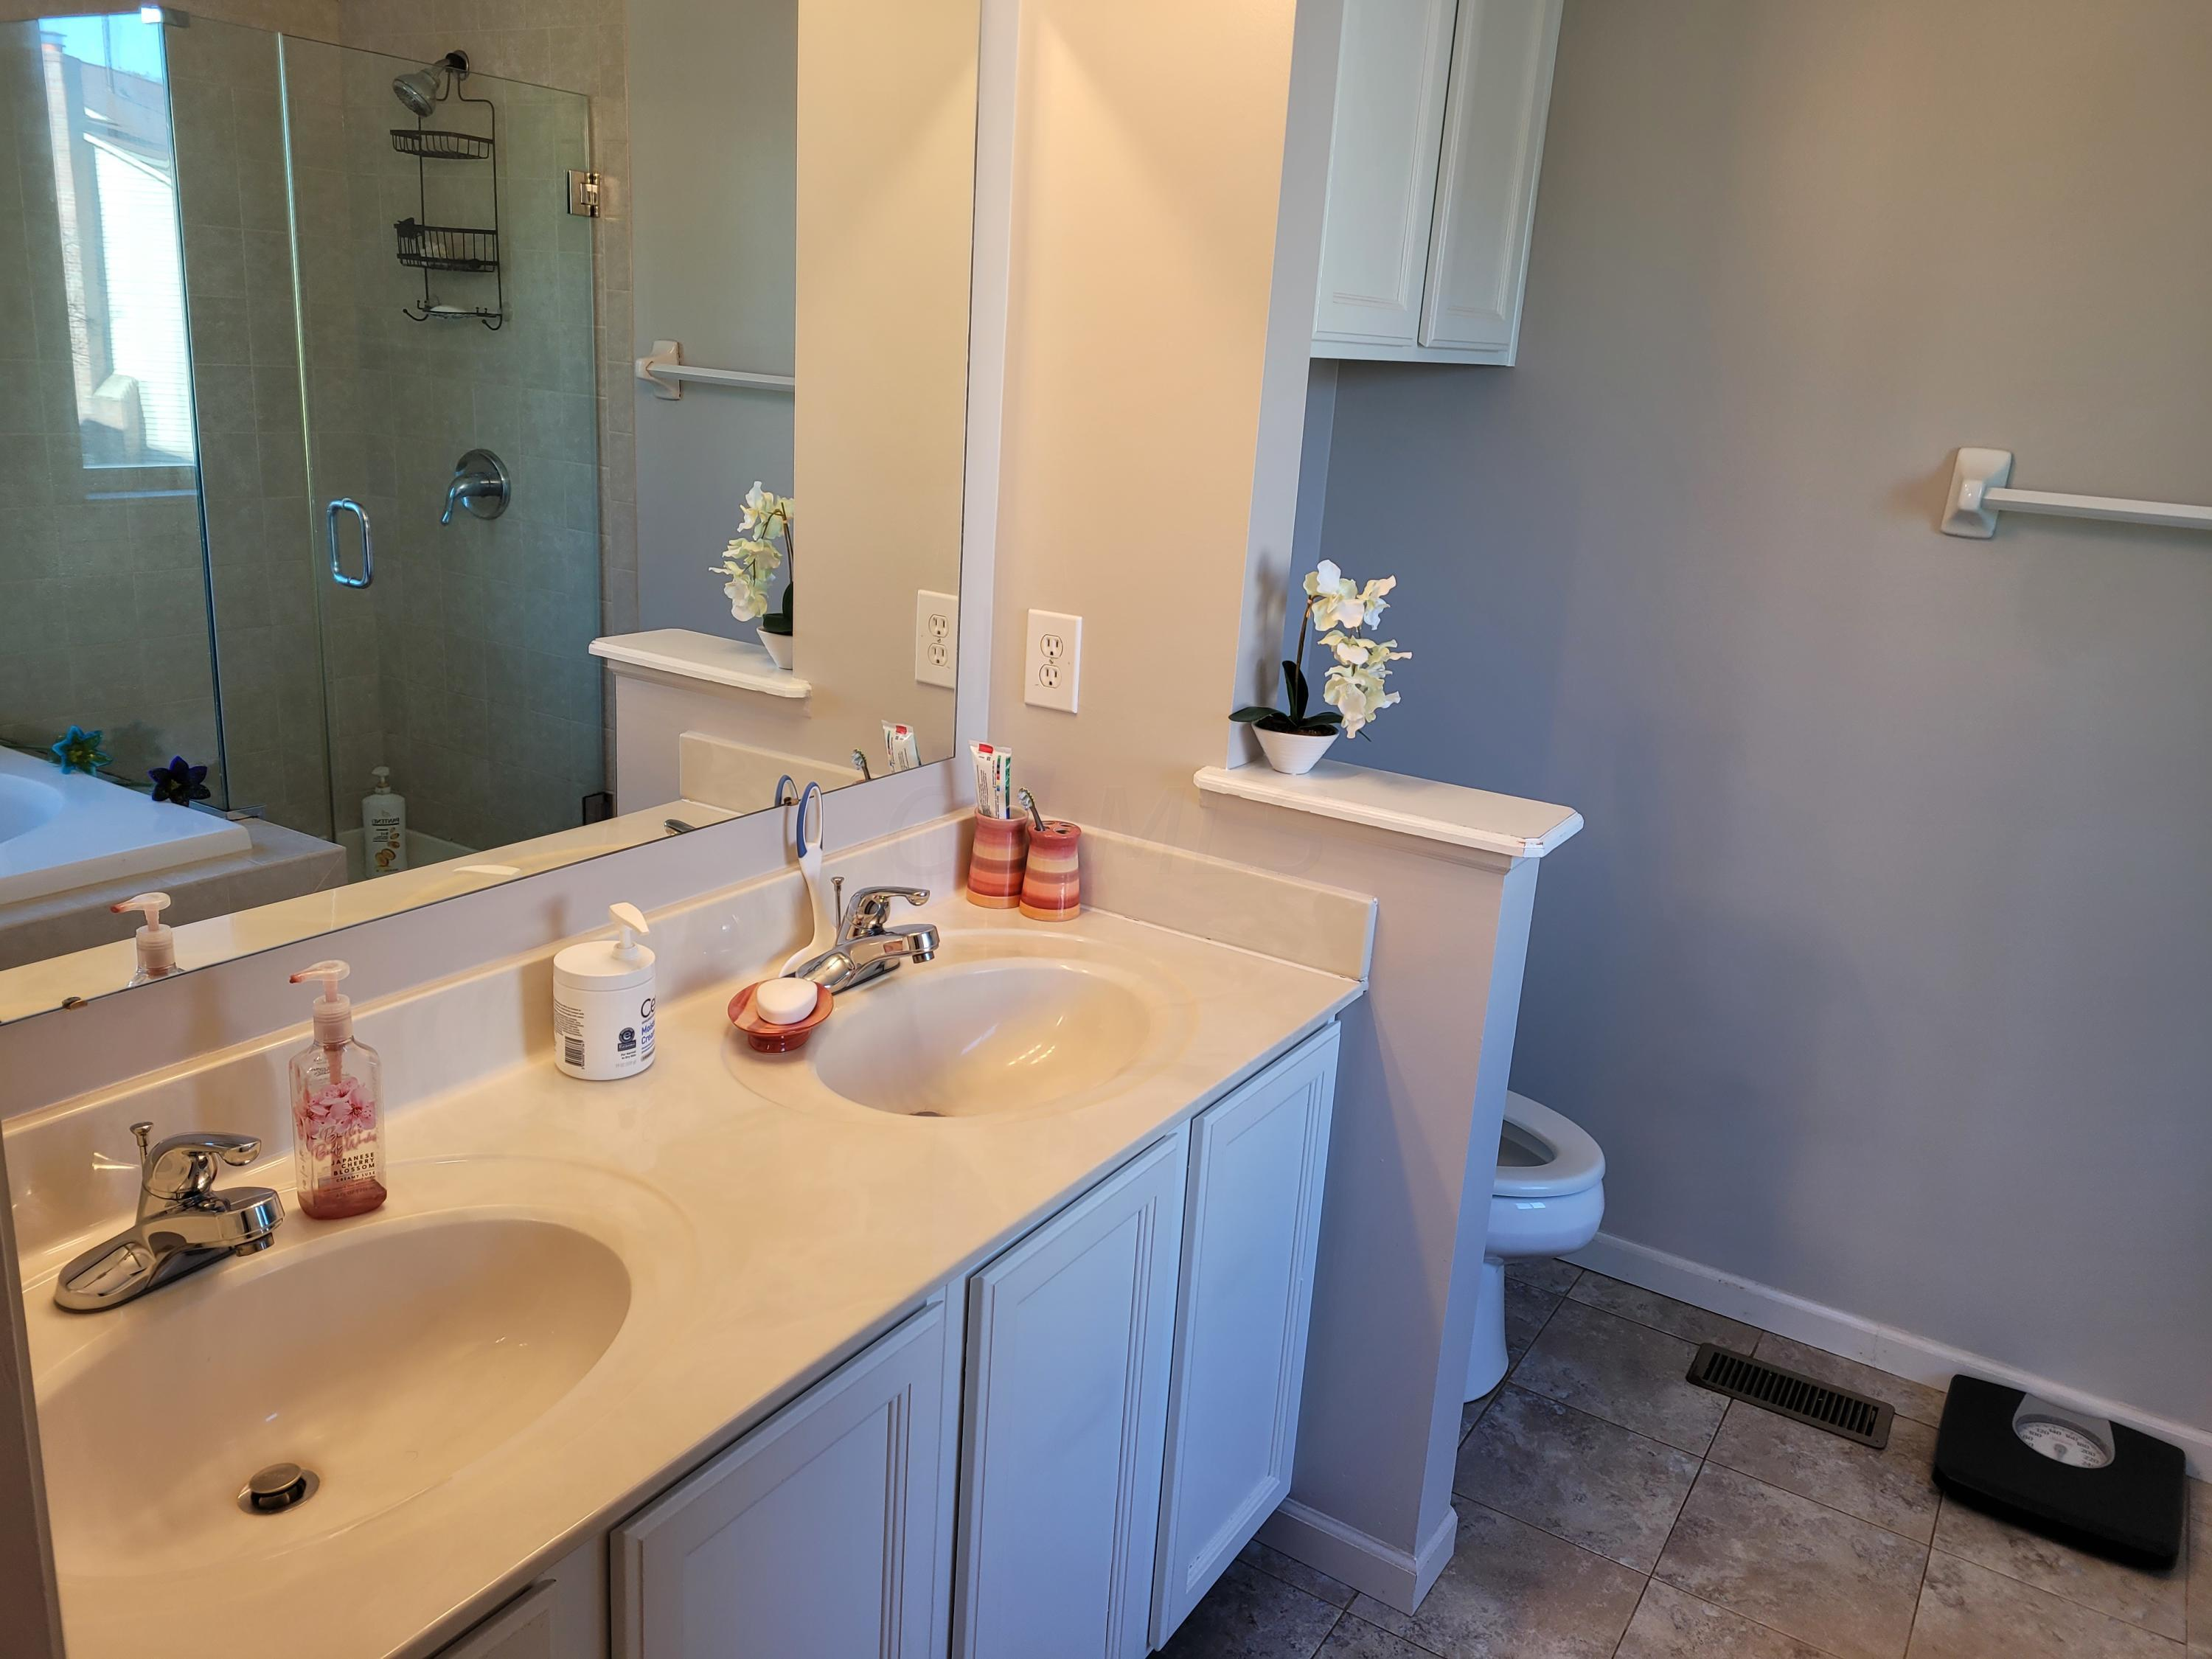 7416 Maynooth Drive, Dublin, Ohio 43017, 4 Bedrooms Bedrooms, ,3 BathroomsBathrooms,Residential,For Sale,Maynooth,220031266